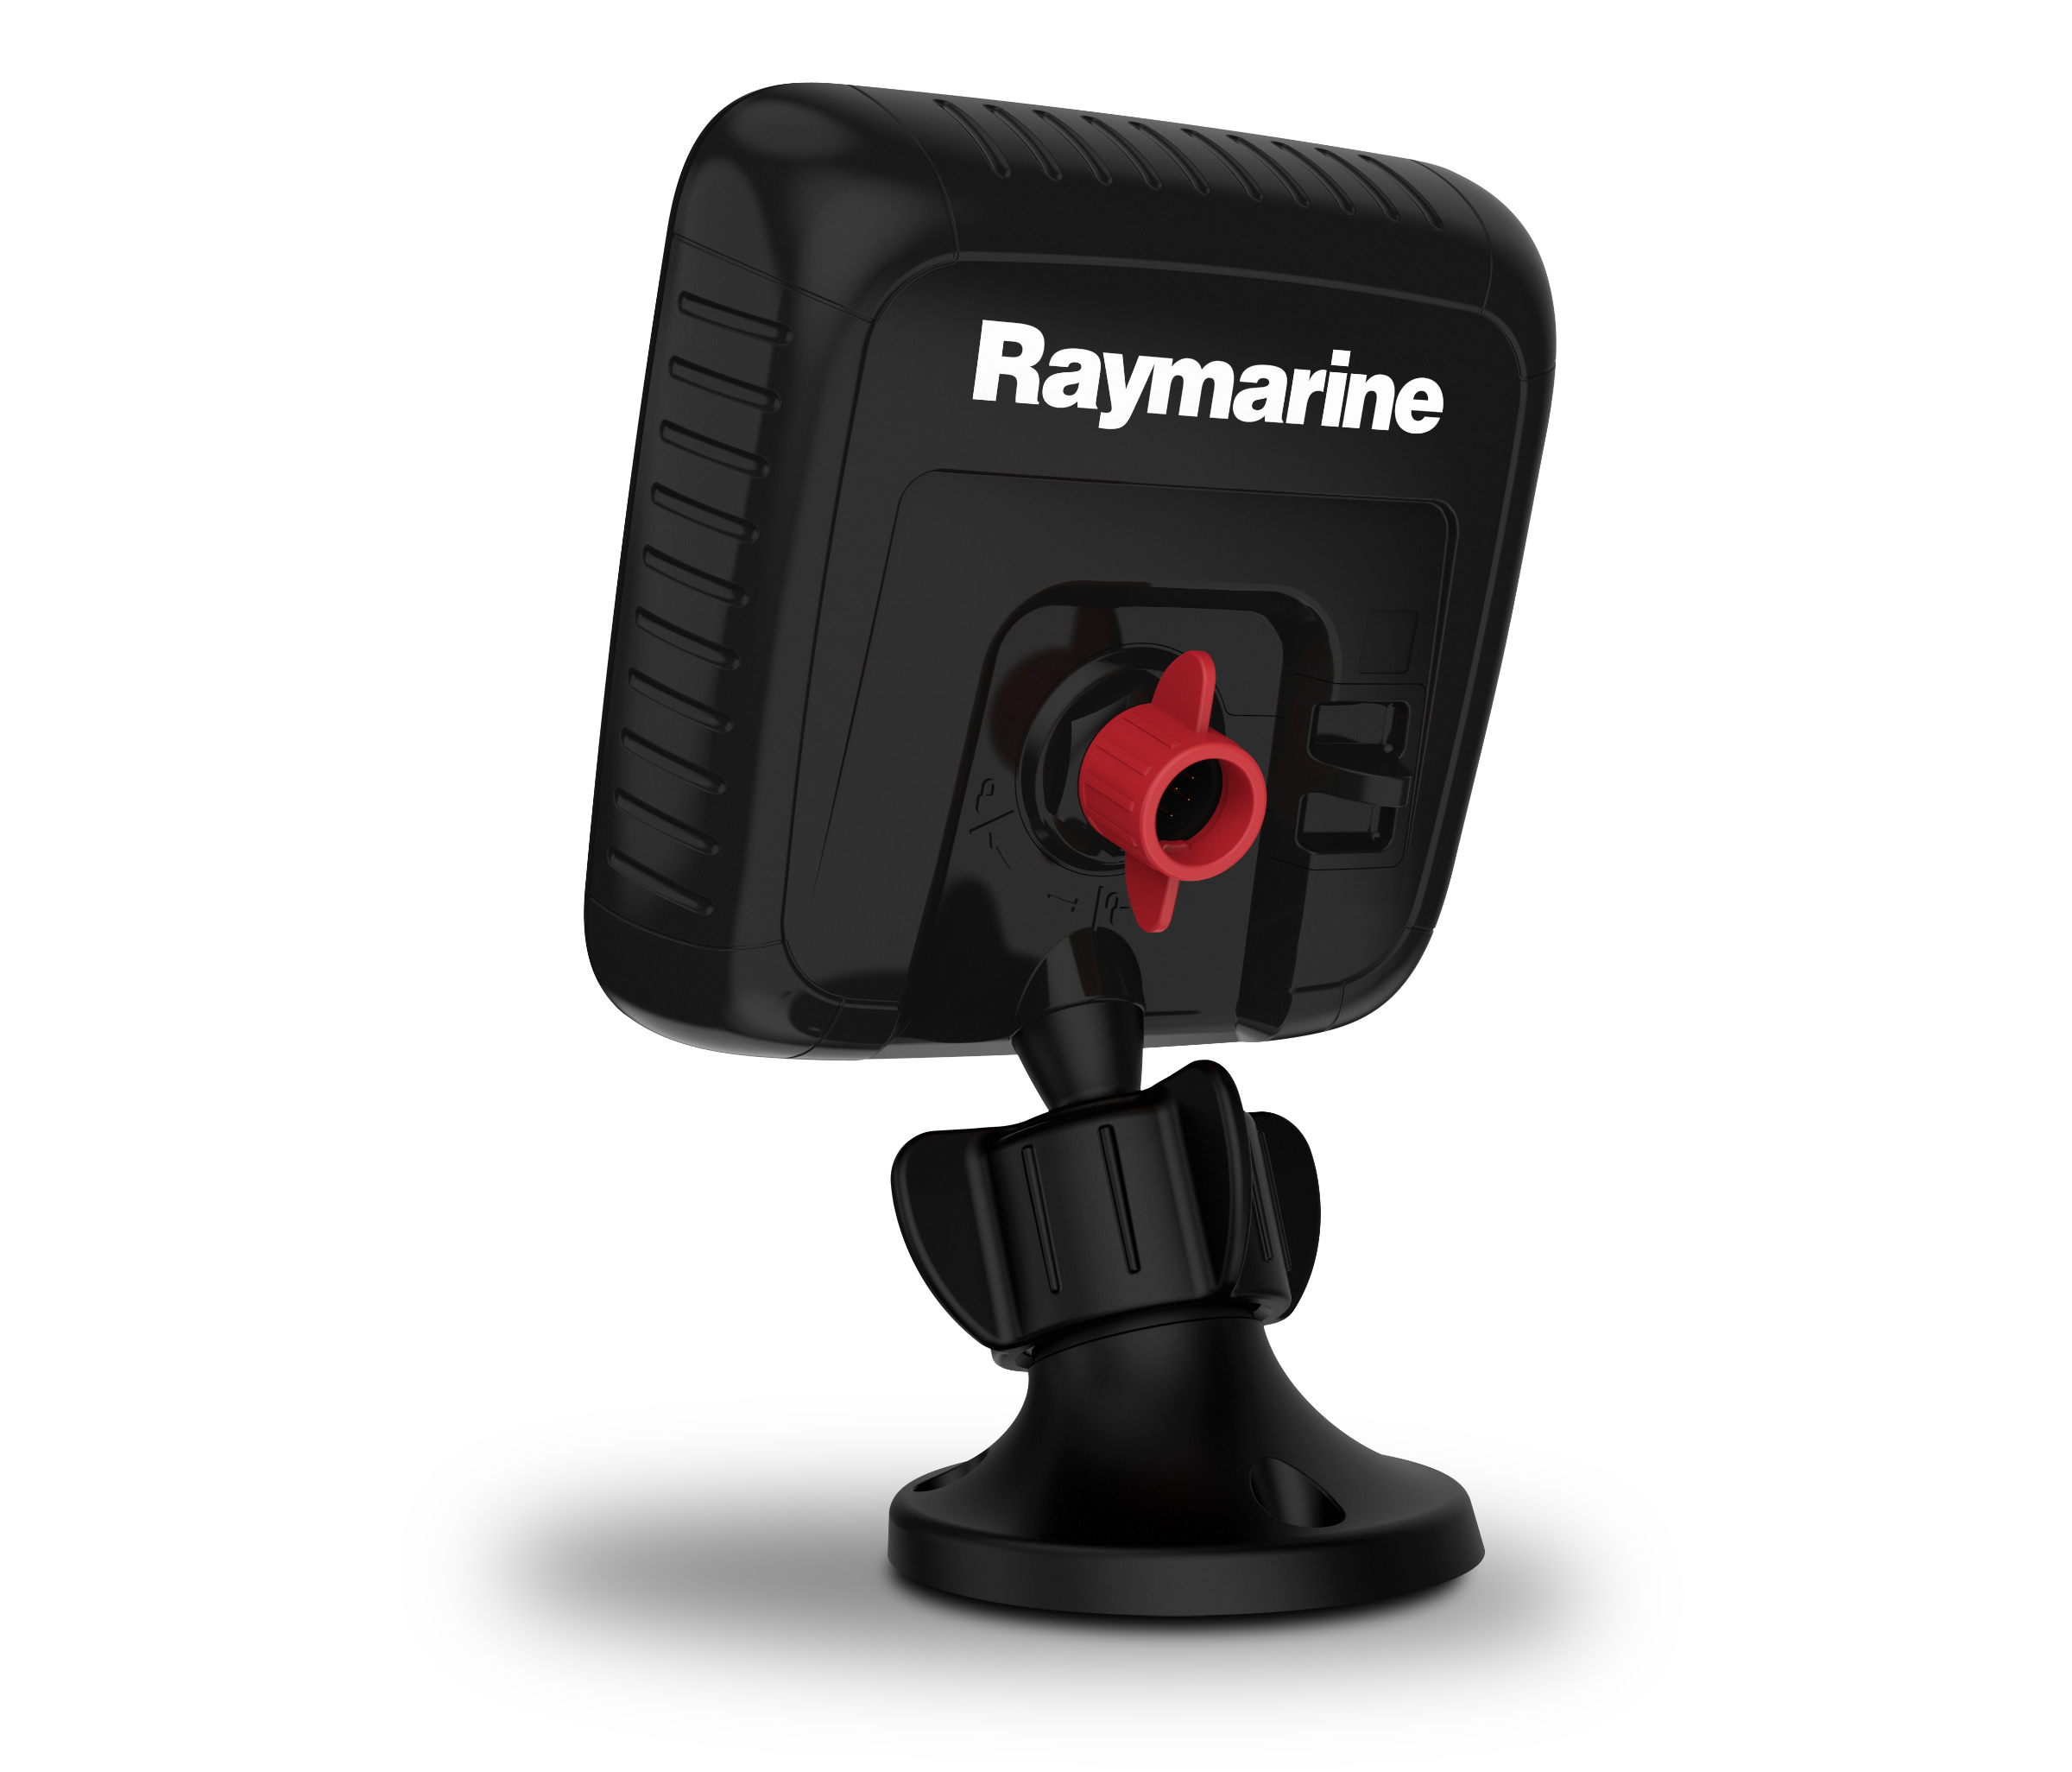 Raymarine Dragonfly 4dv Feature Finder Glasgow Angling